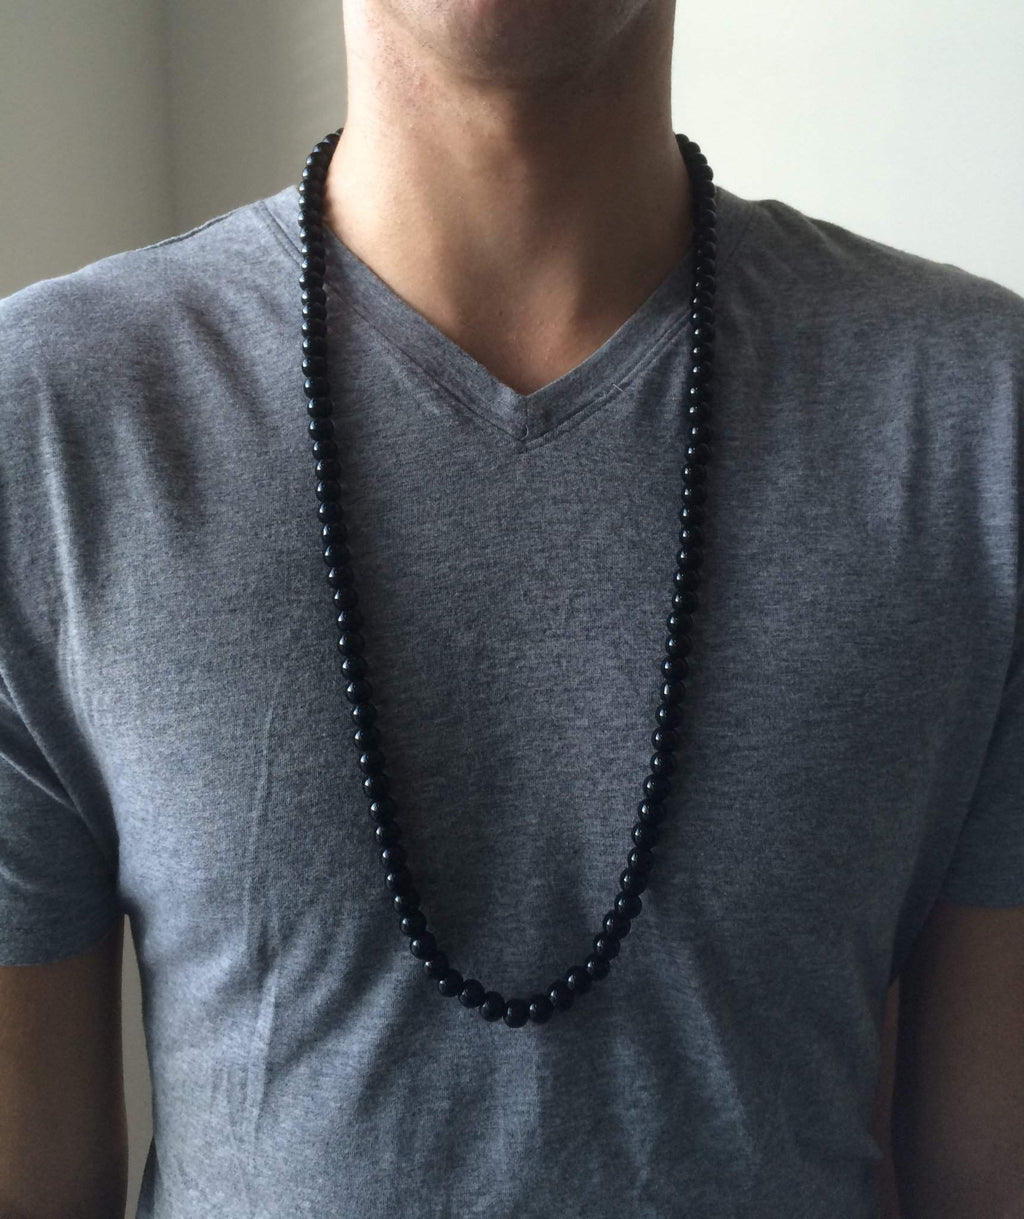 Mens Black Onyx Beaded Long and Short Necklaces - JaeBee